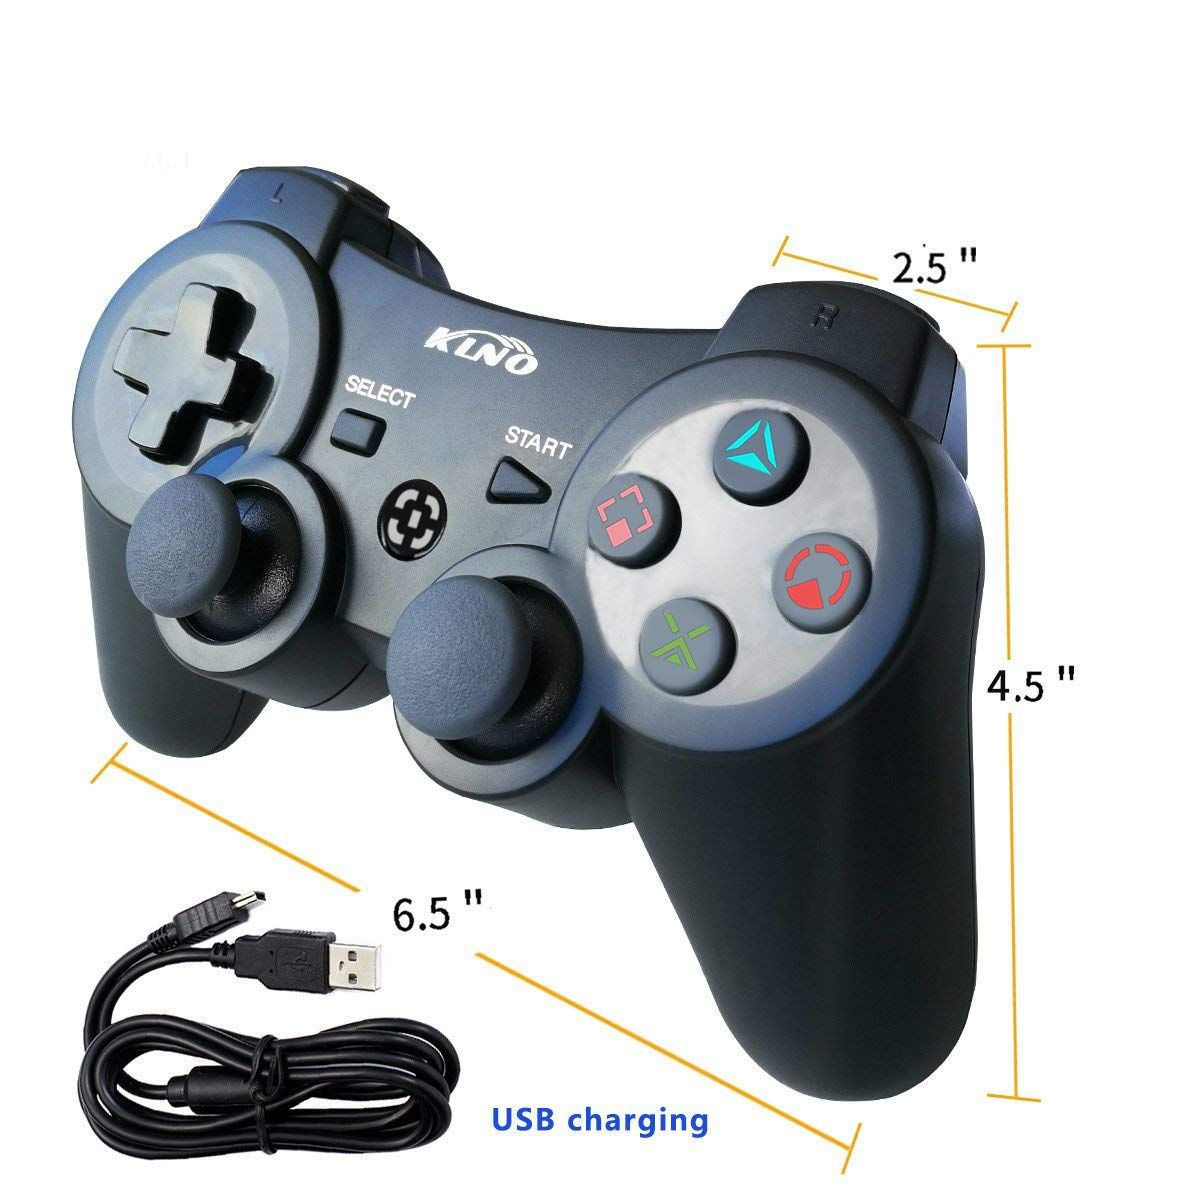 Ps3 Controller Wireless Dualshock Joystick Klno Ps39 Bluetooth Gamepad Sixaxis Super Power Usb Charger Sixax Game Controller Cool Gifts For Kids Dualshock